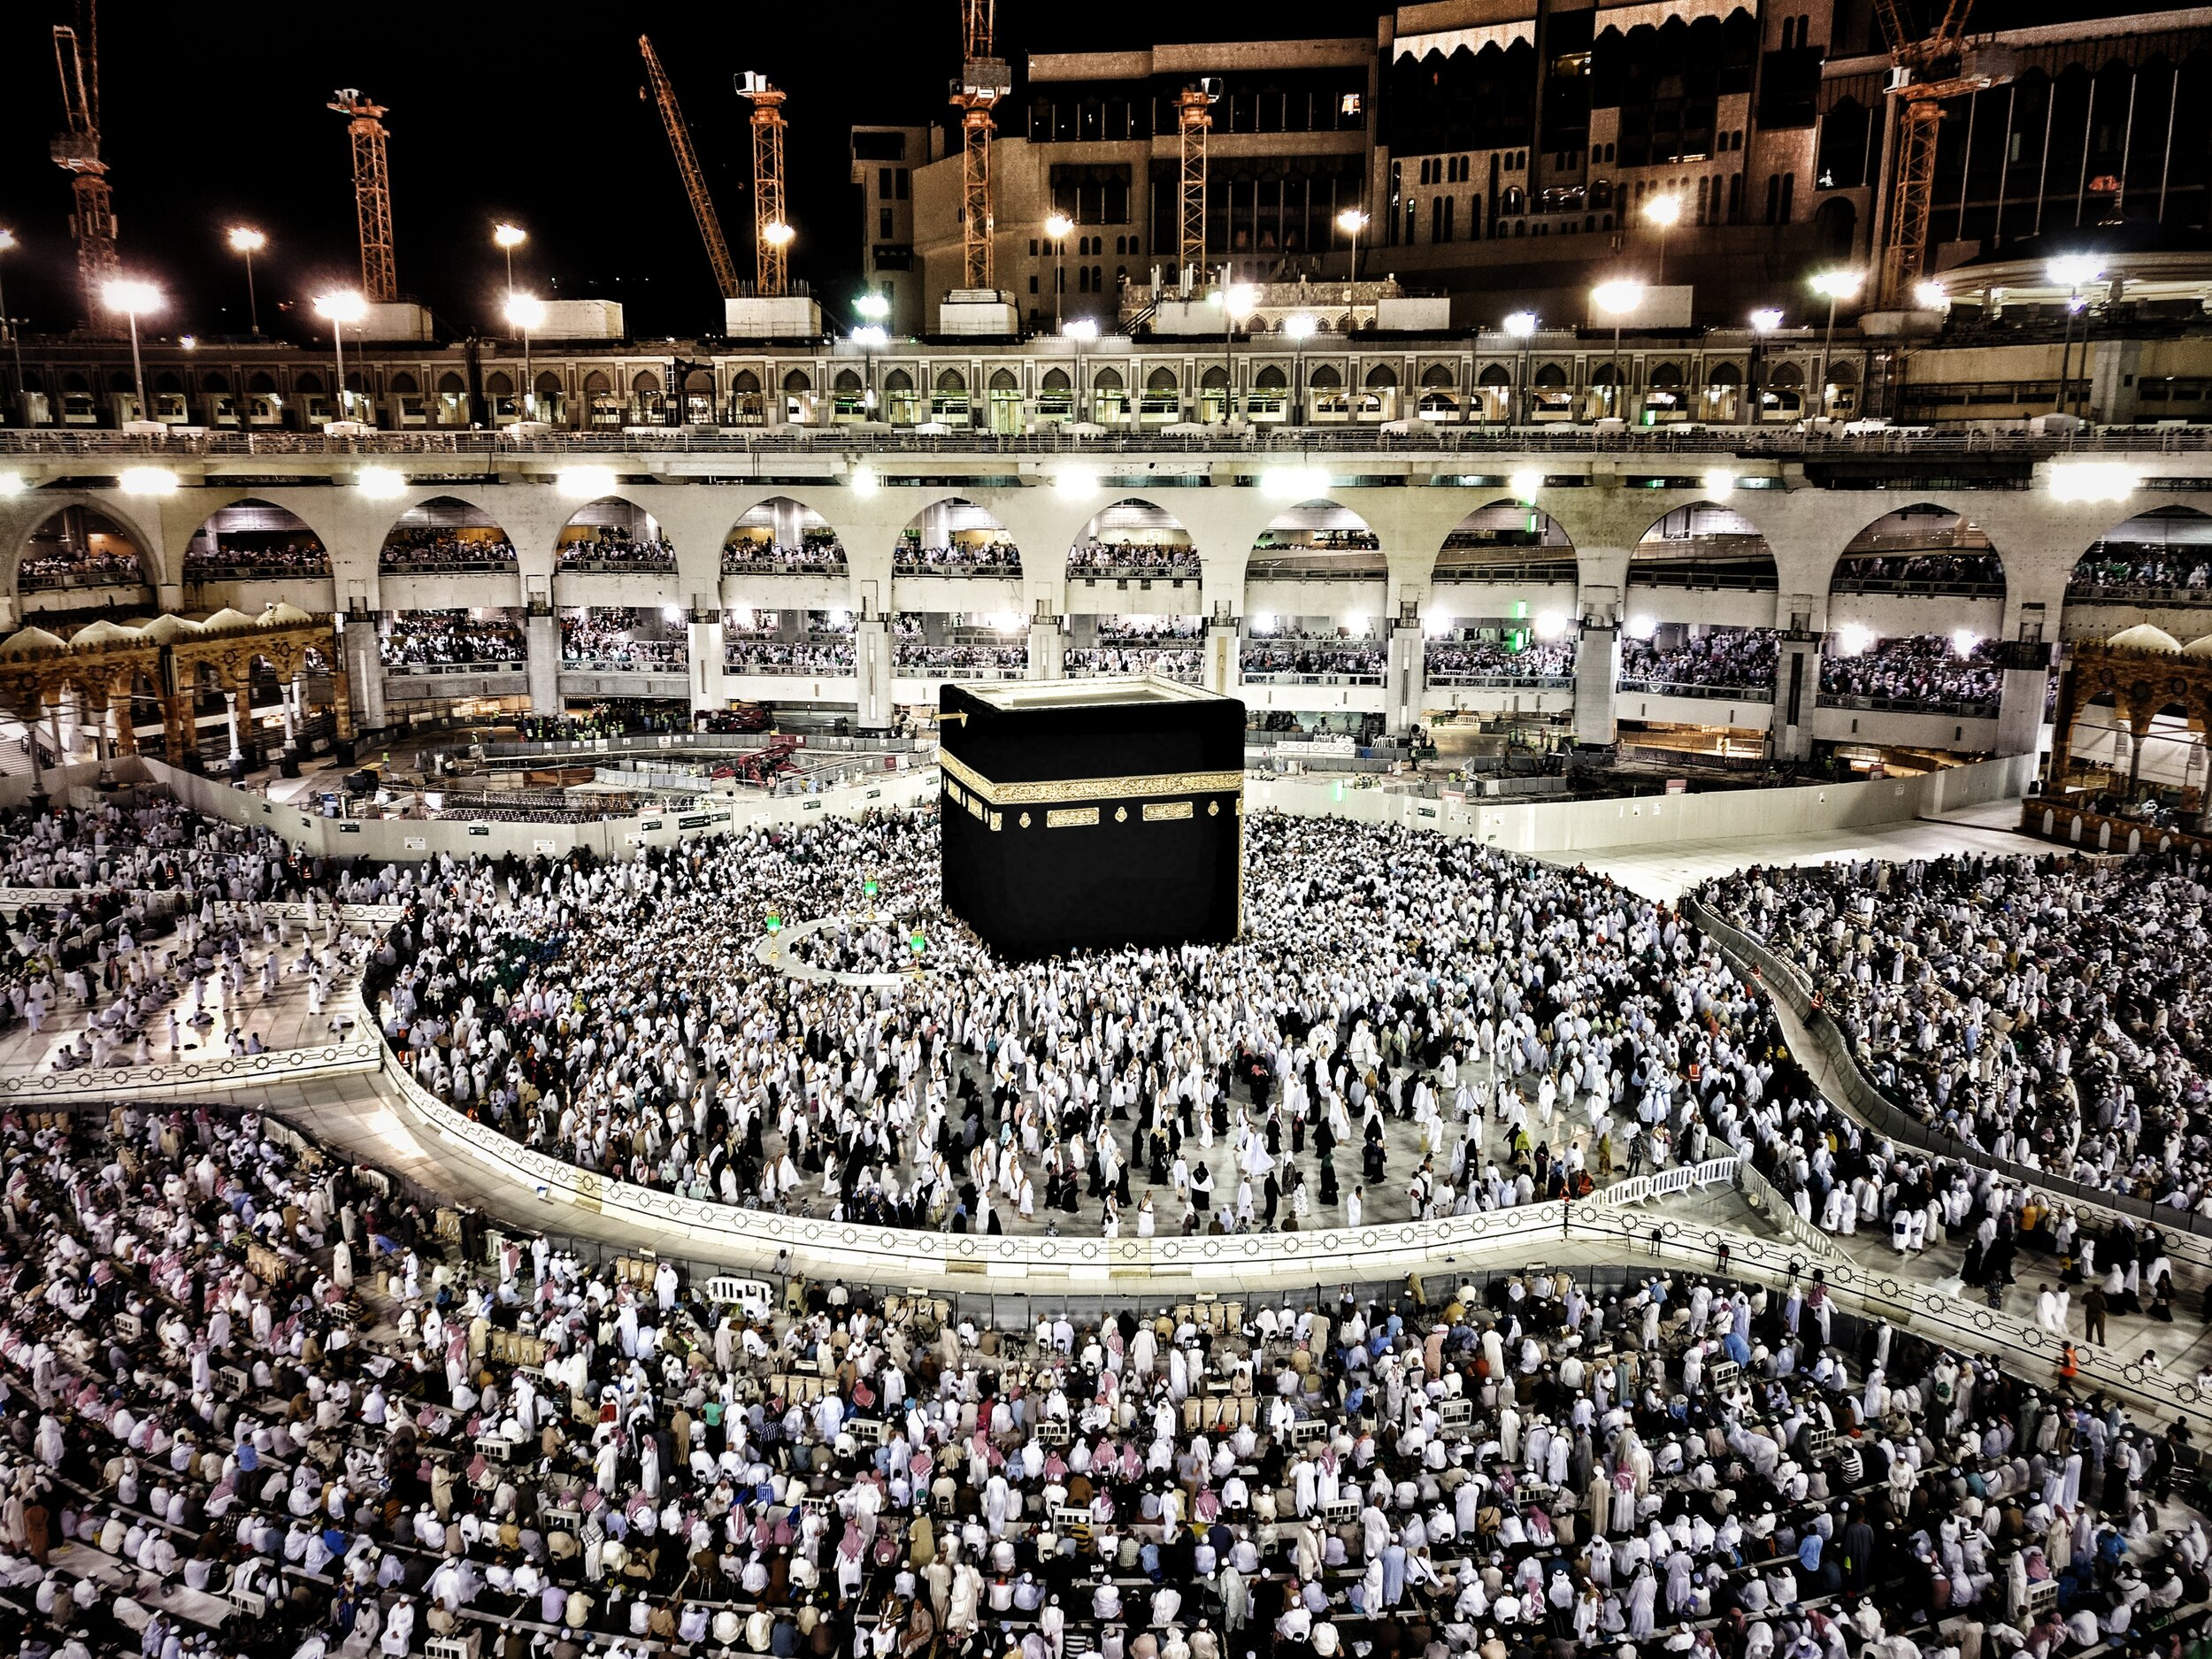 Going to Ummrah without a mehram